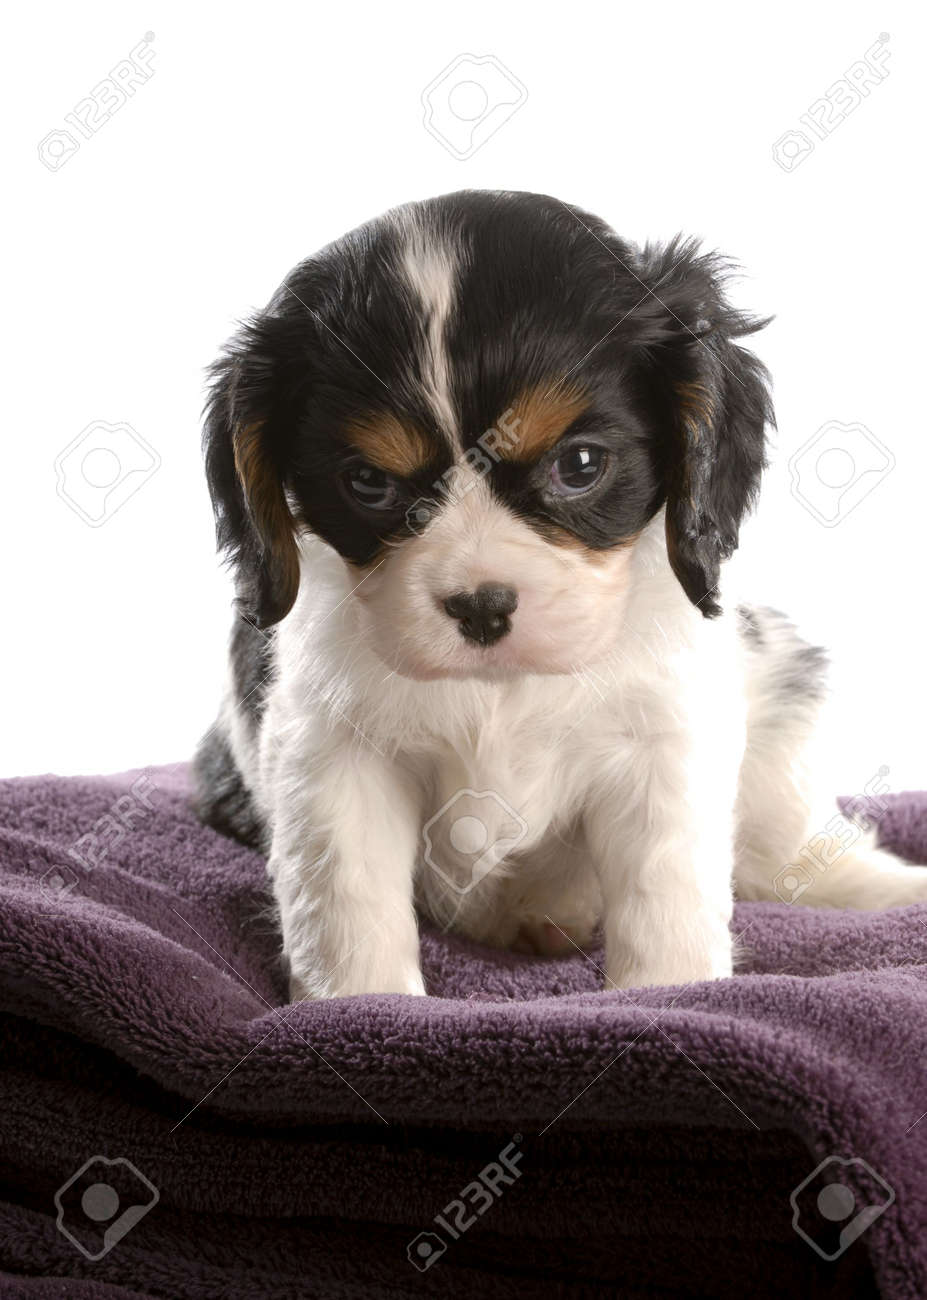 Six Week Old Tri Color Cavalier King Charles Spaniel Puppy Stock Photo Picture And Royalty Free Image Image 6347389